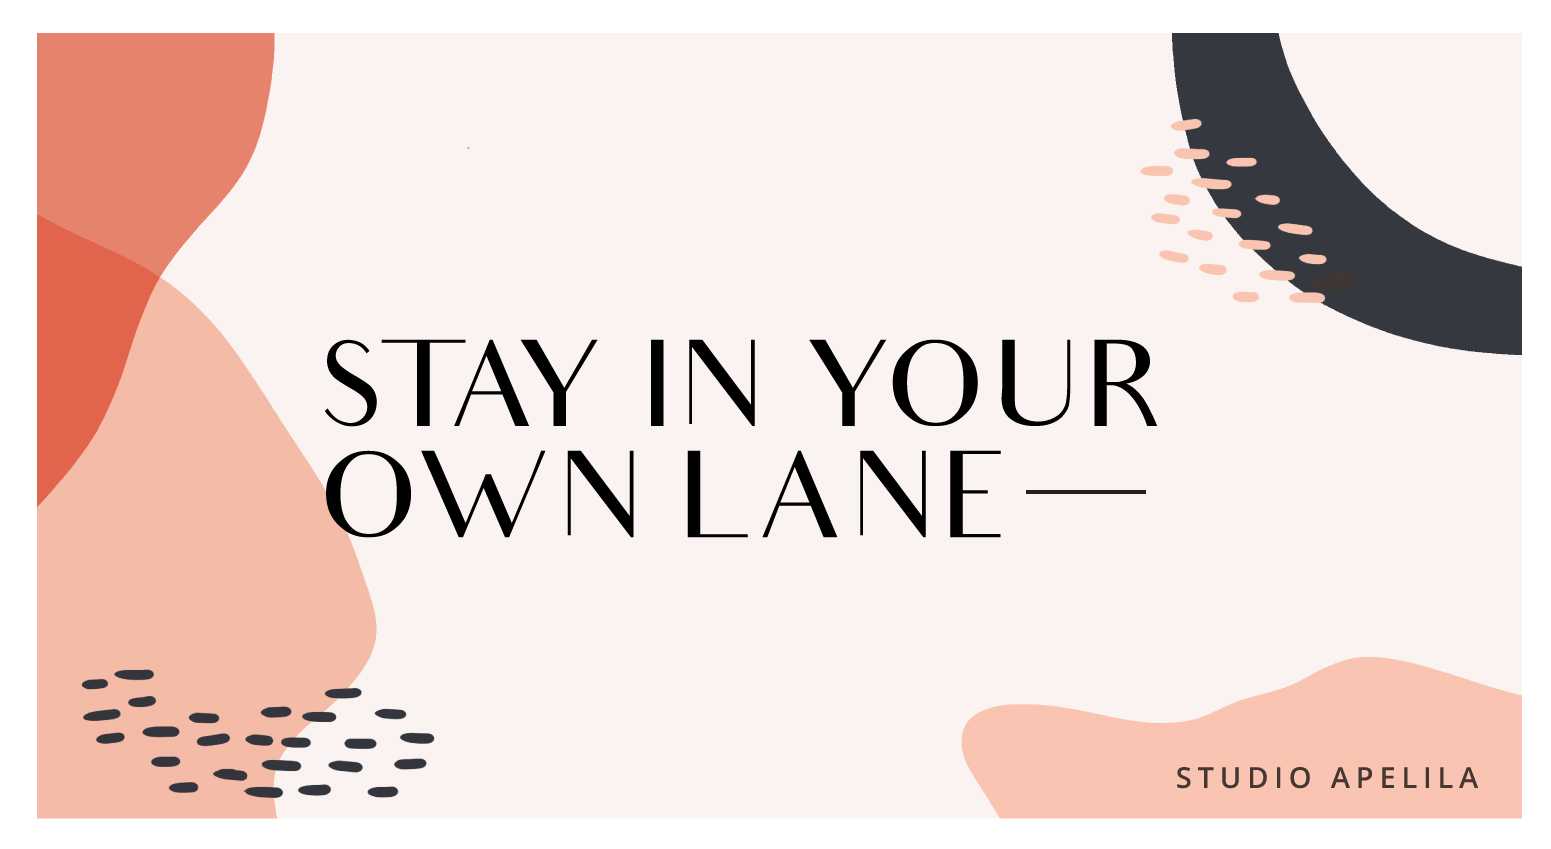 STAY-IN-your-own-lane.jpg